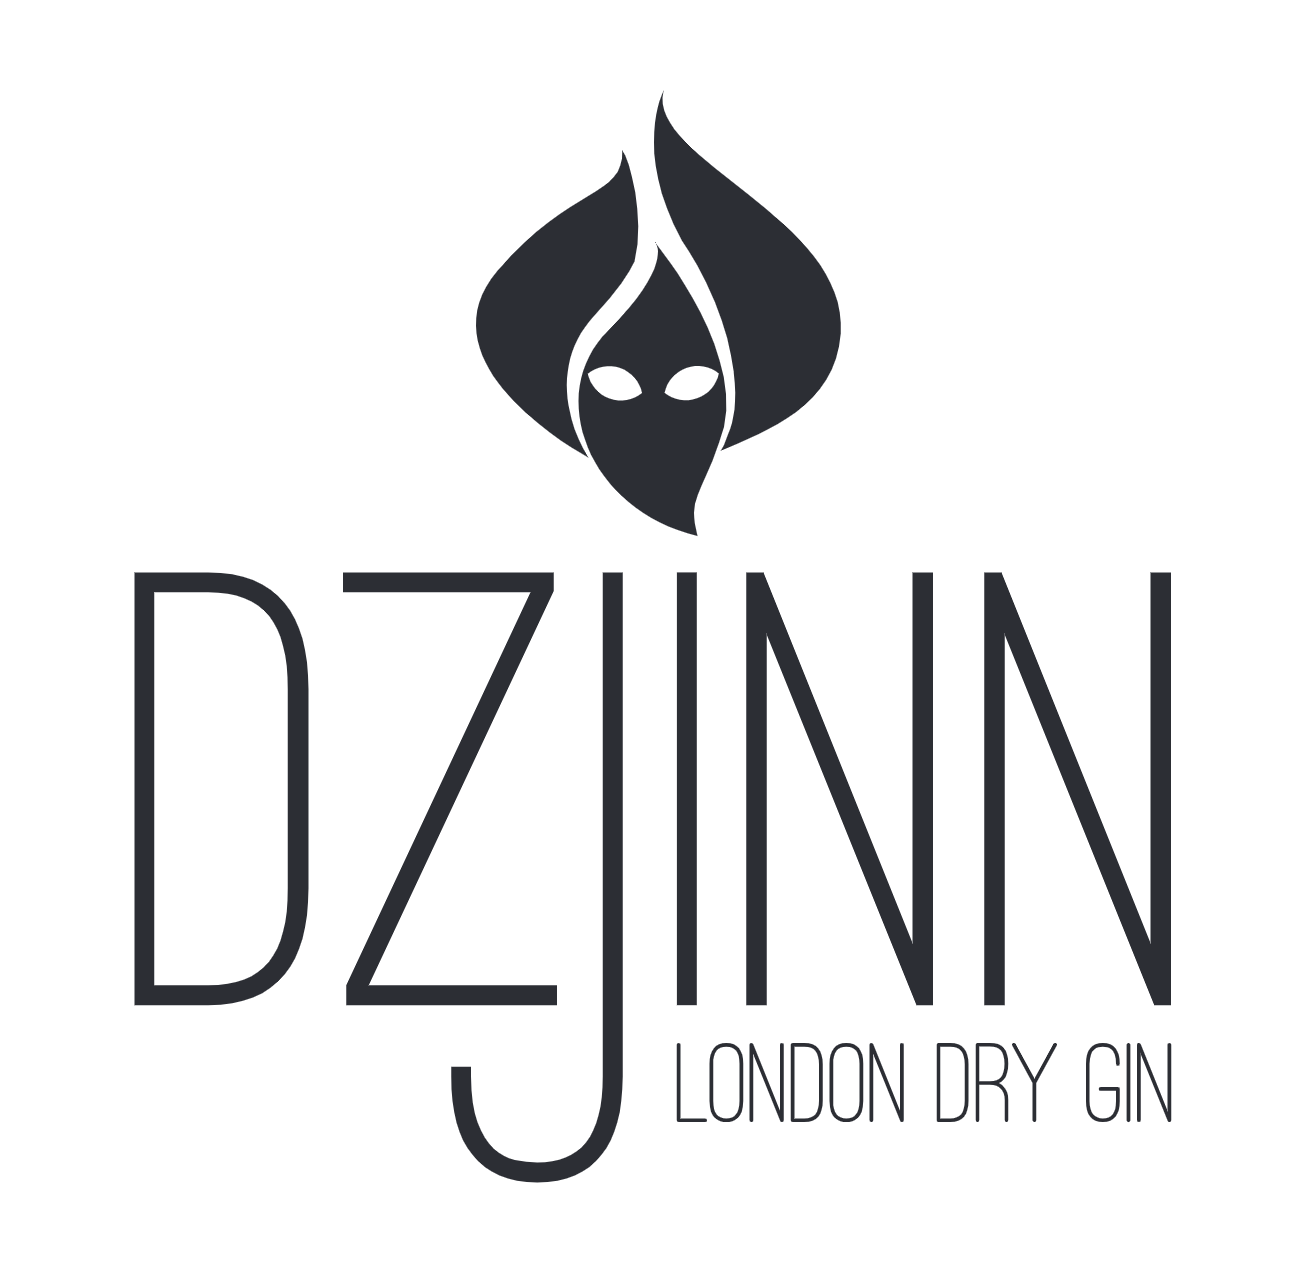 Dzjinn - London Dry Gin